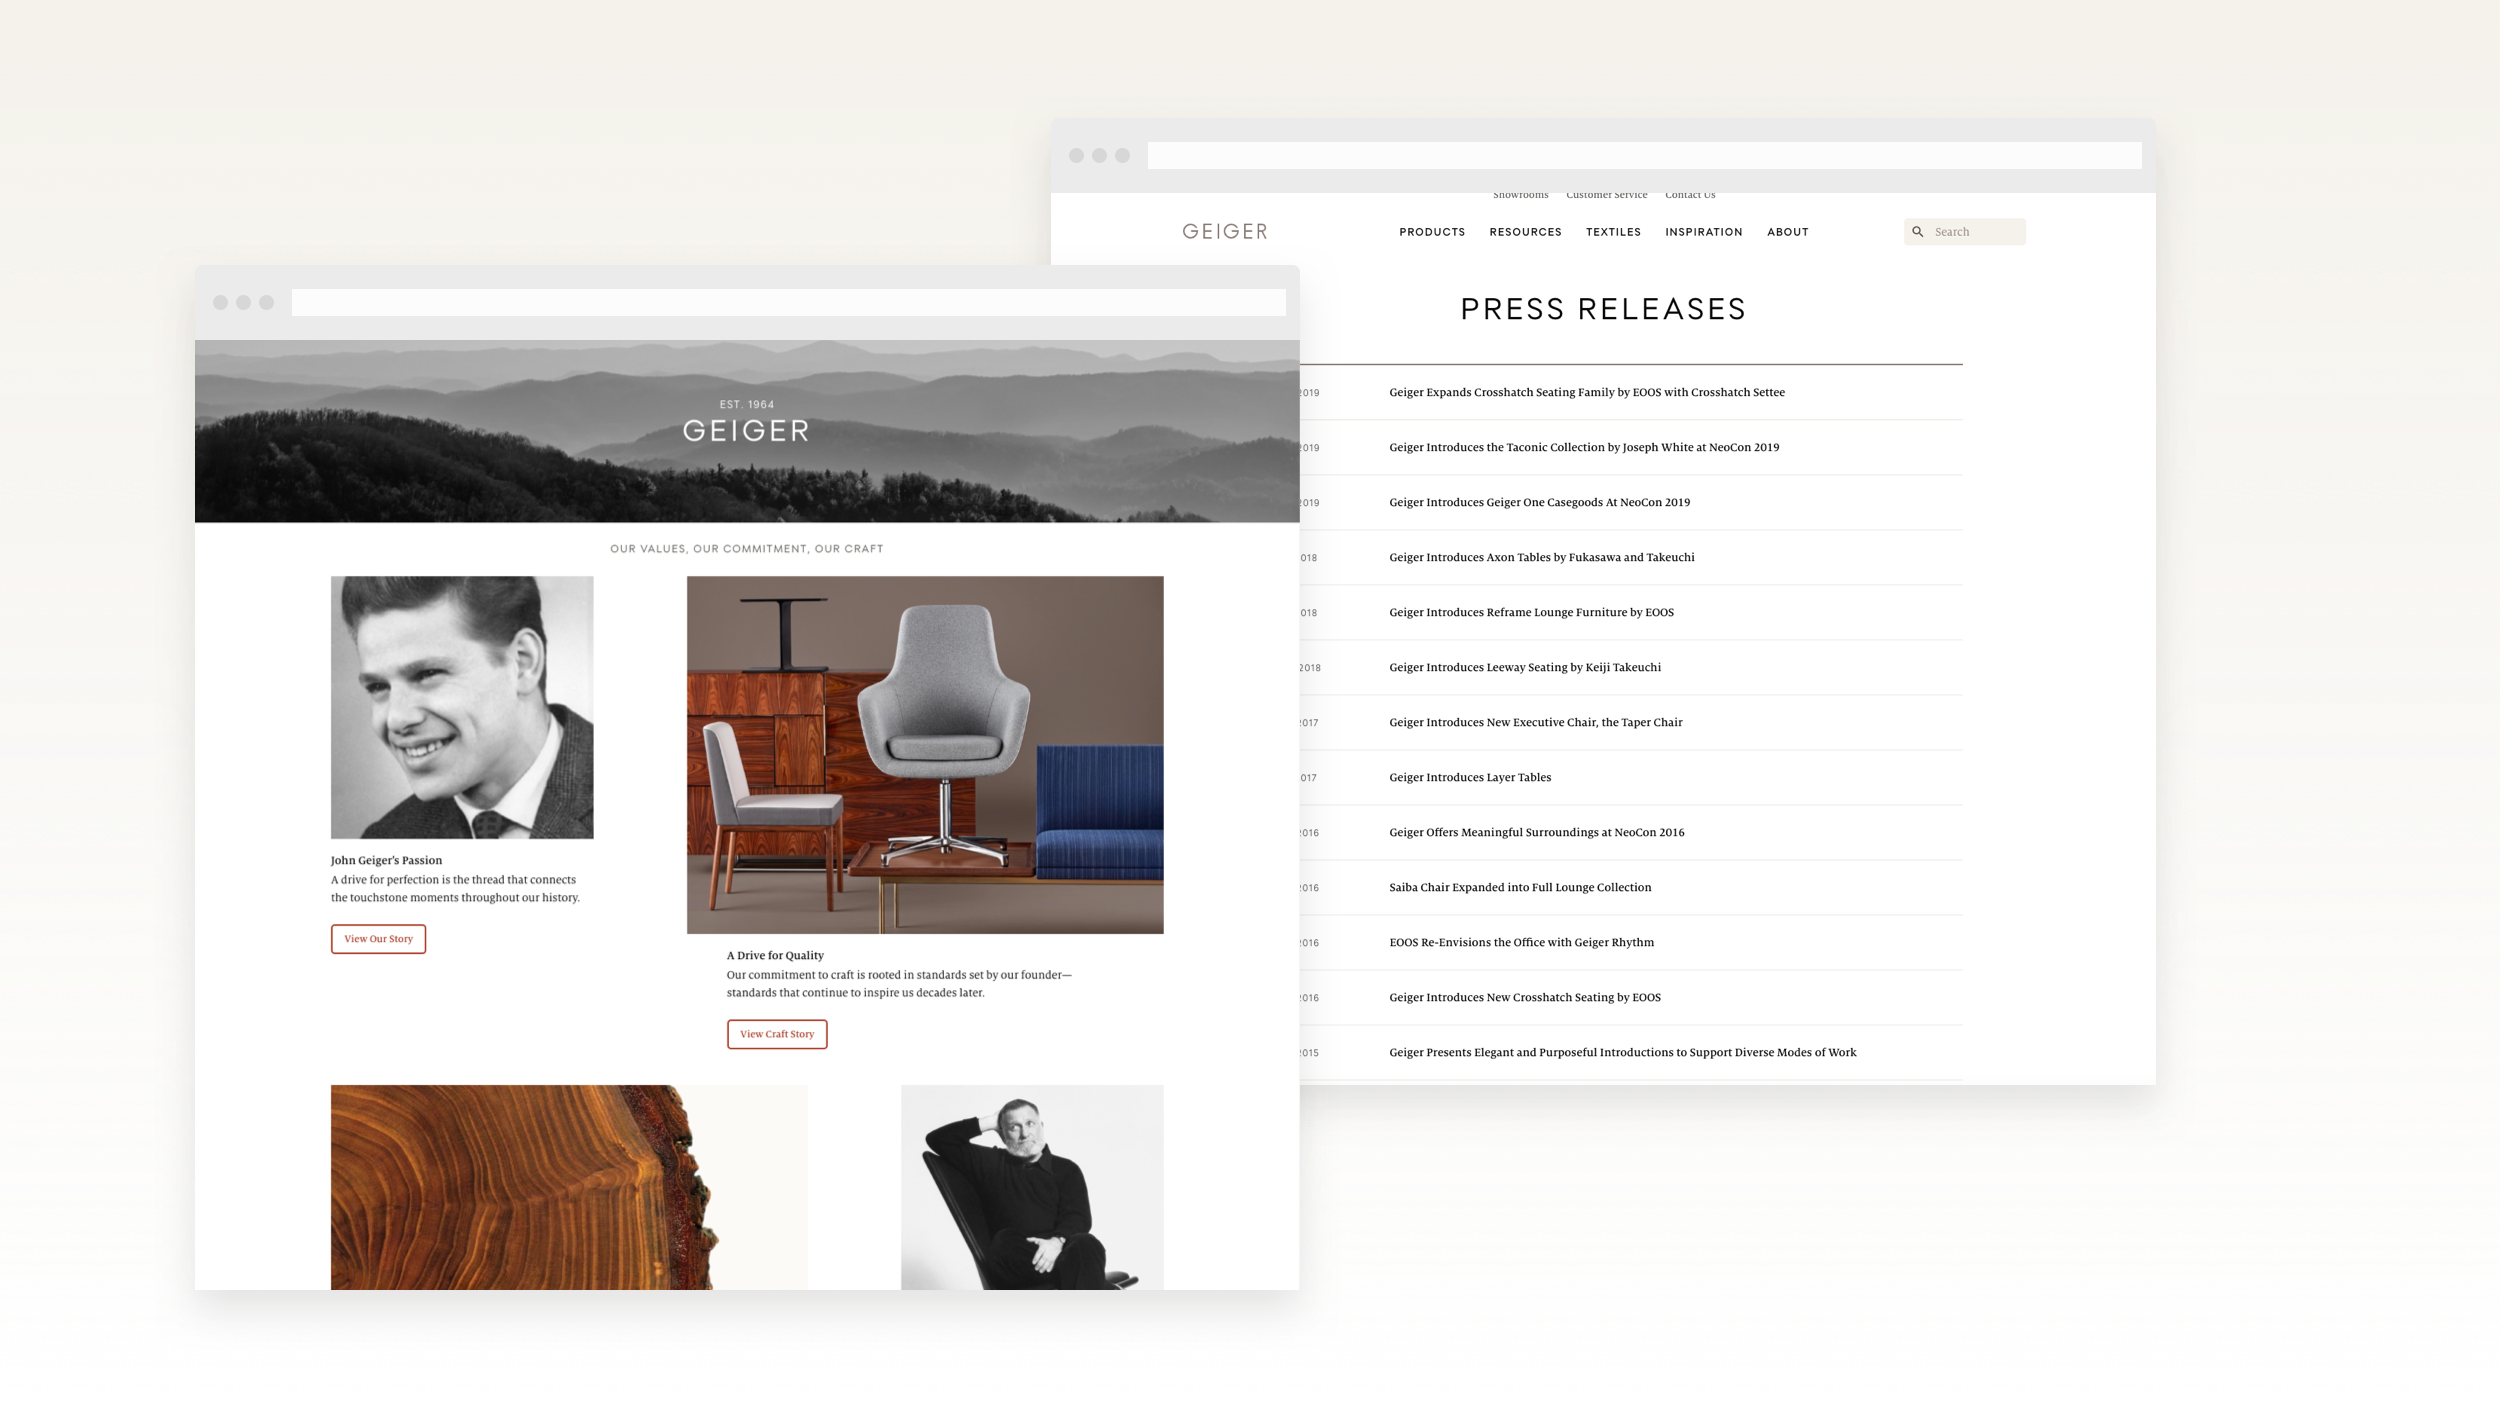 About us landing page with press page mockup.